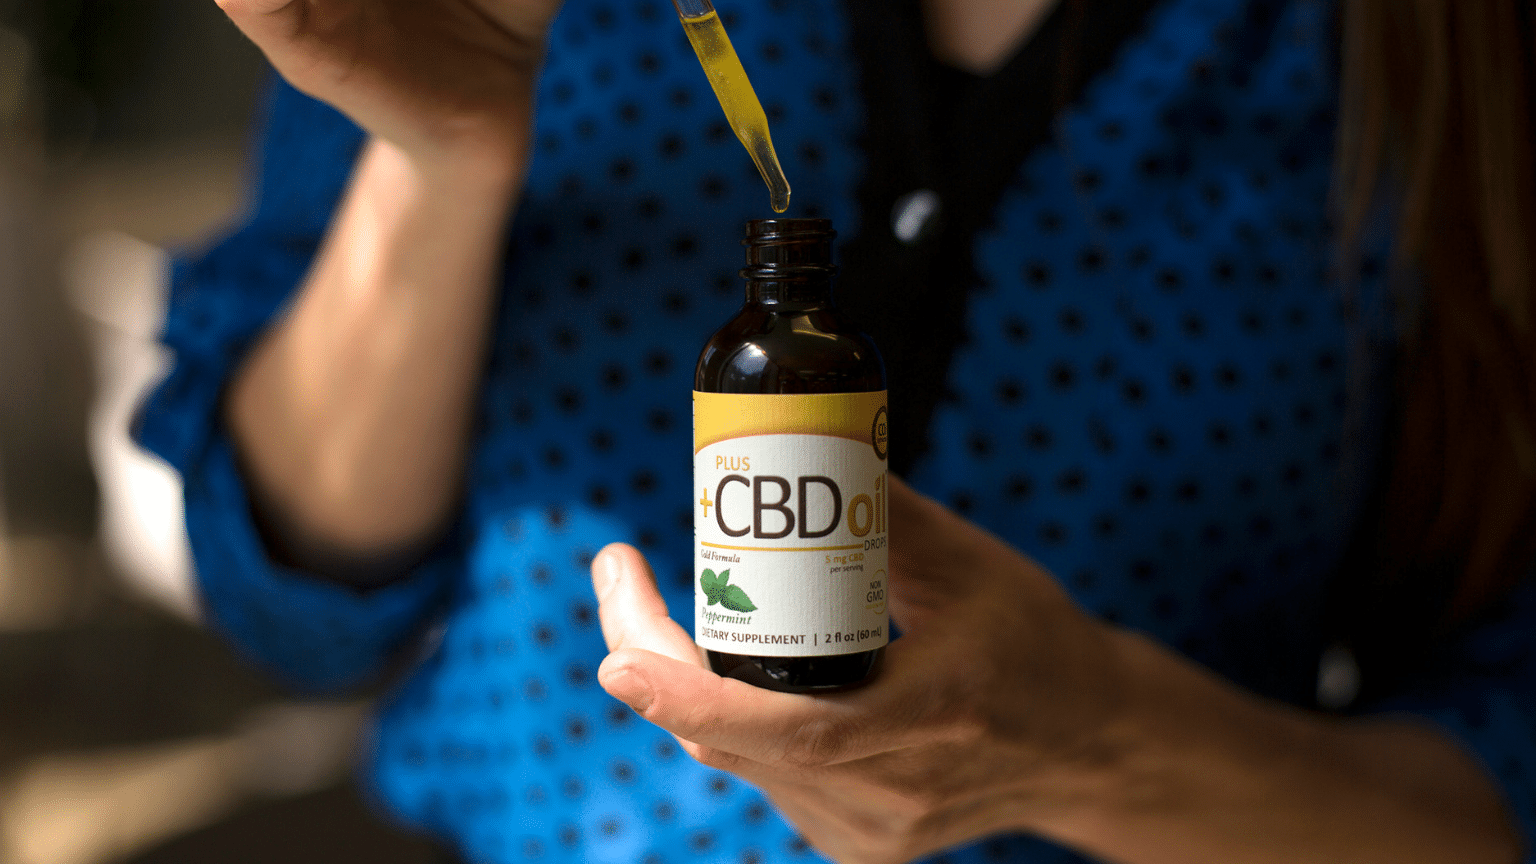 plus-cbd-oil-drops-in-use